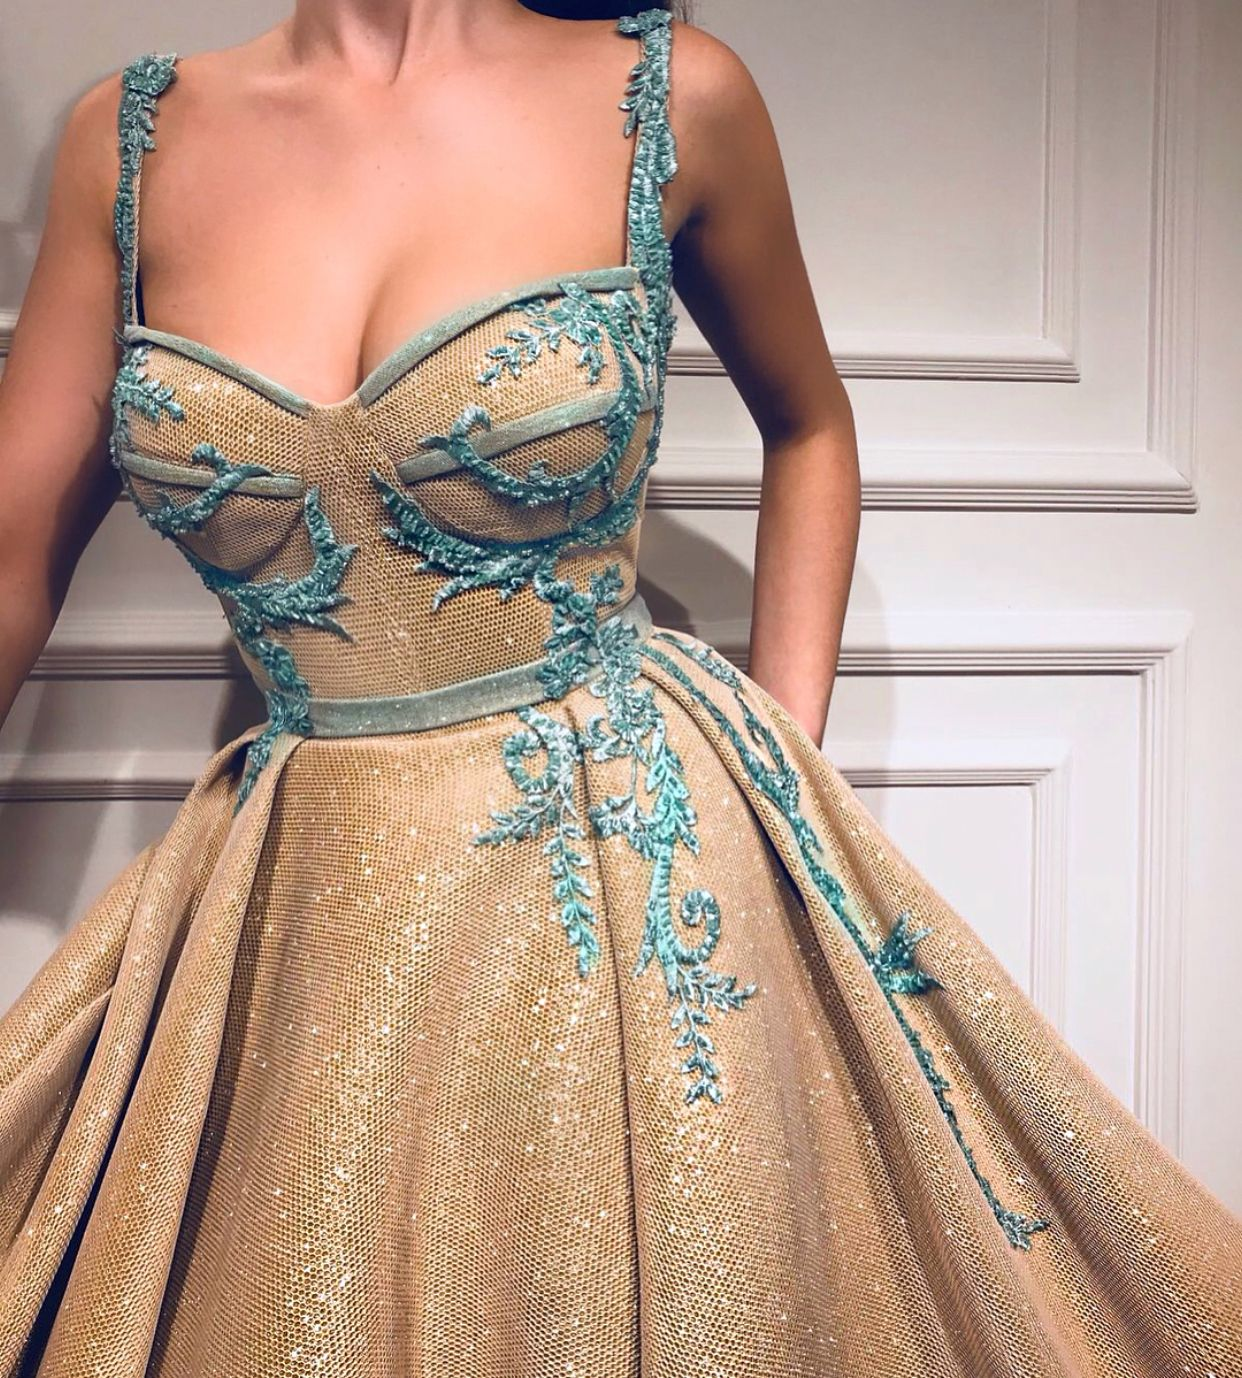 Pin by shamari crawford on female clothes inspo in pinterest